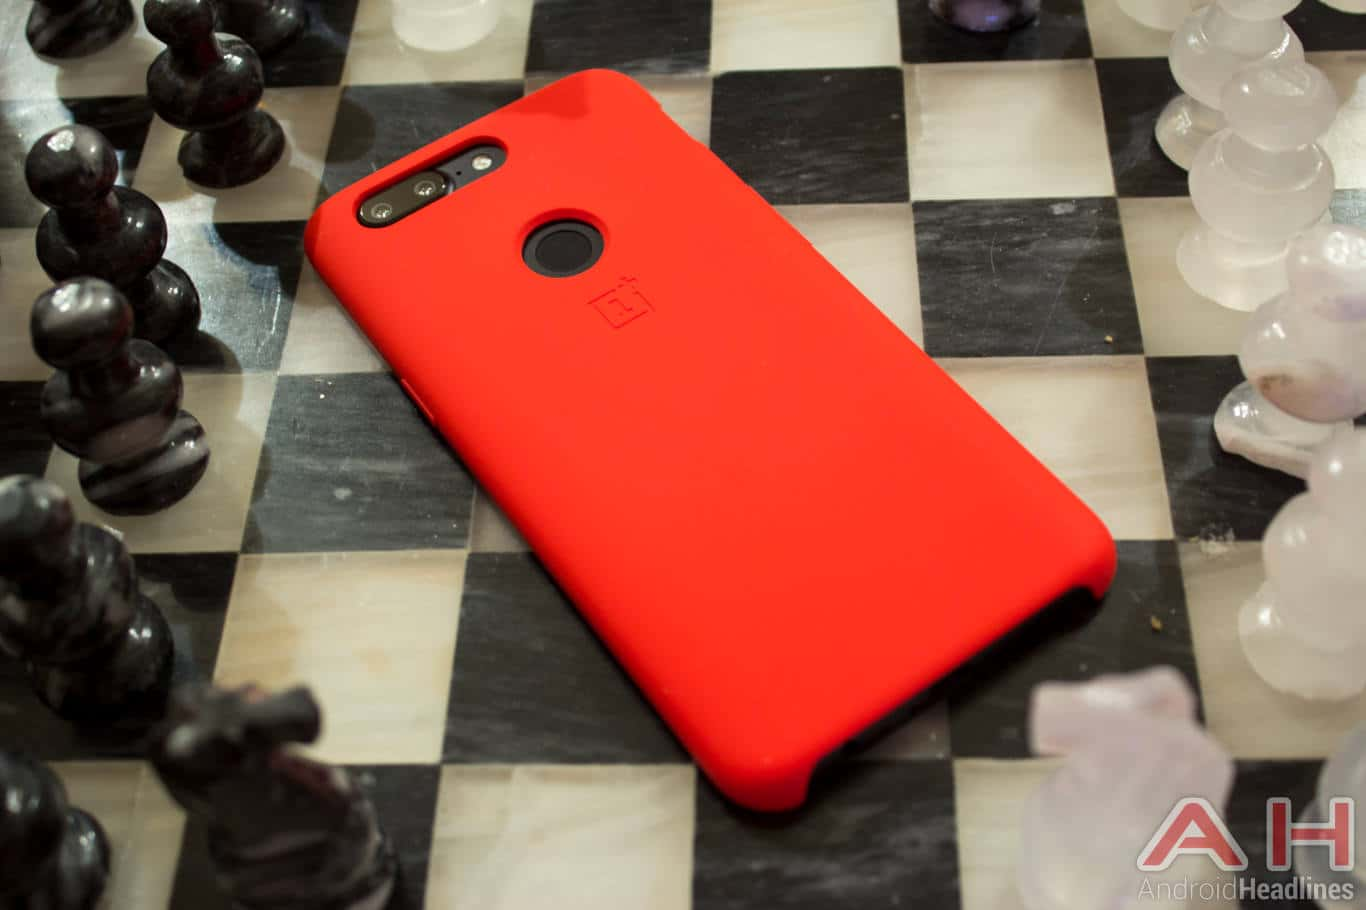 Coque Oneplus 5t AH NS 44 rouge